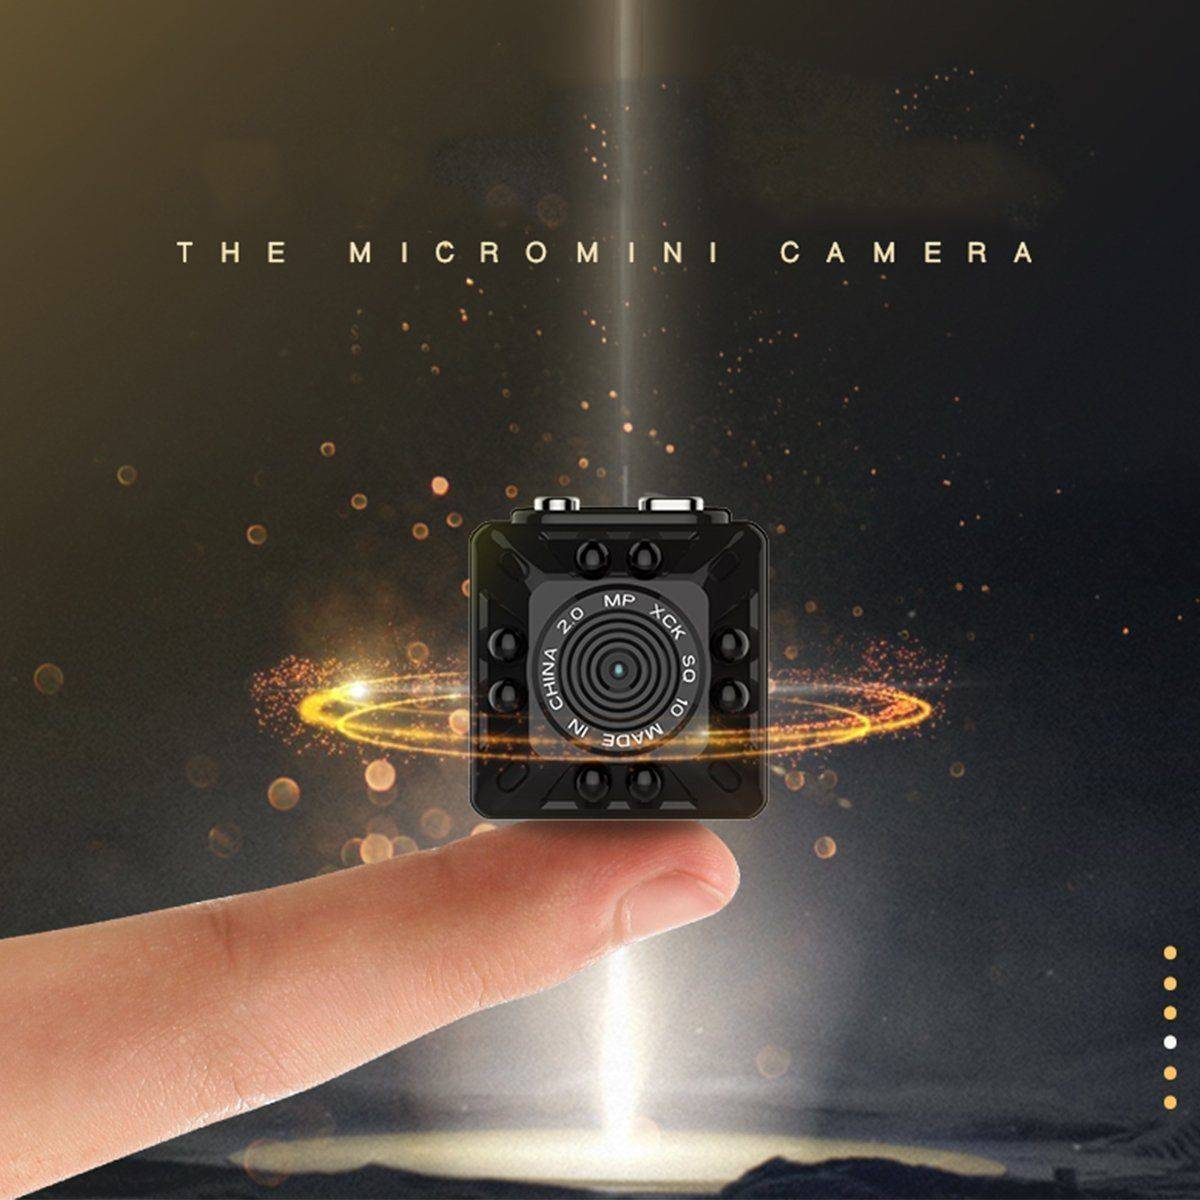 32G Card+SQ10 Mini Camera HD 1080P Camera Night Vision Mini Micro Cameras32G Card+SQ10 Mini Camera HD 1080P Camera Night Vision Mini Micro Cameras